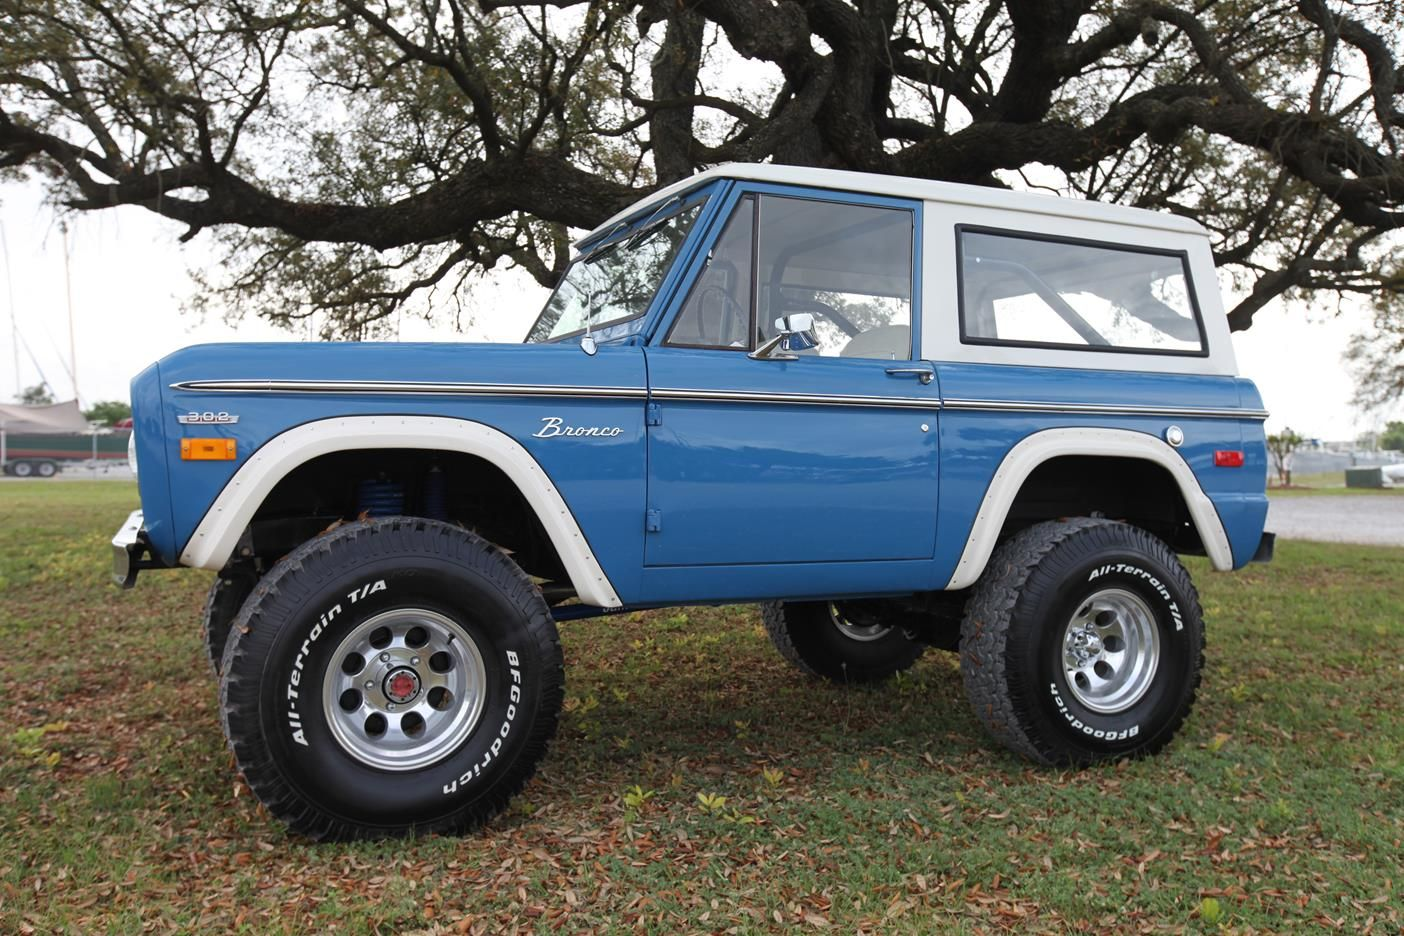 Early Classic Ford Bronco 351 Windsor Bahama Blue Built By